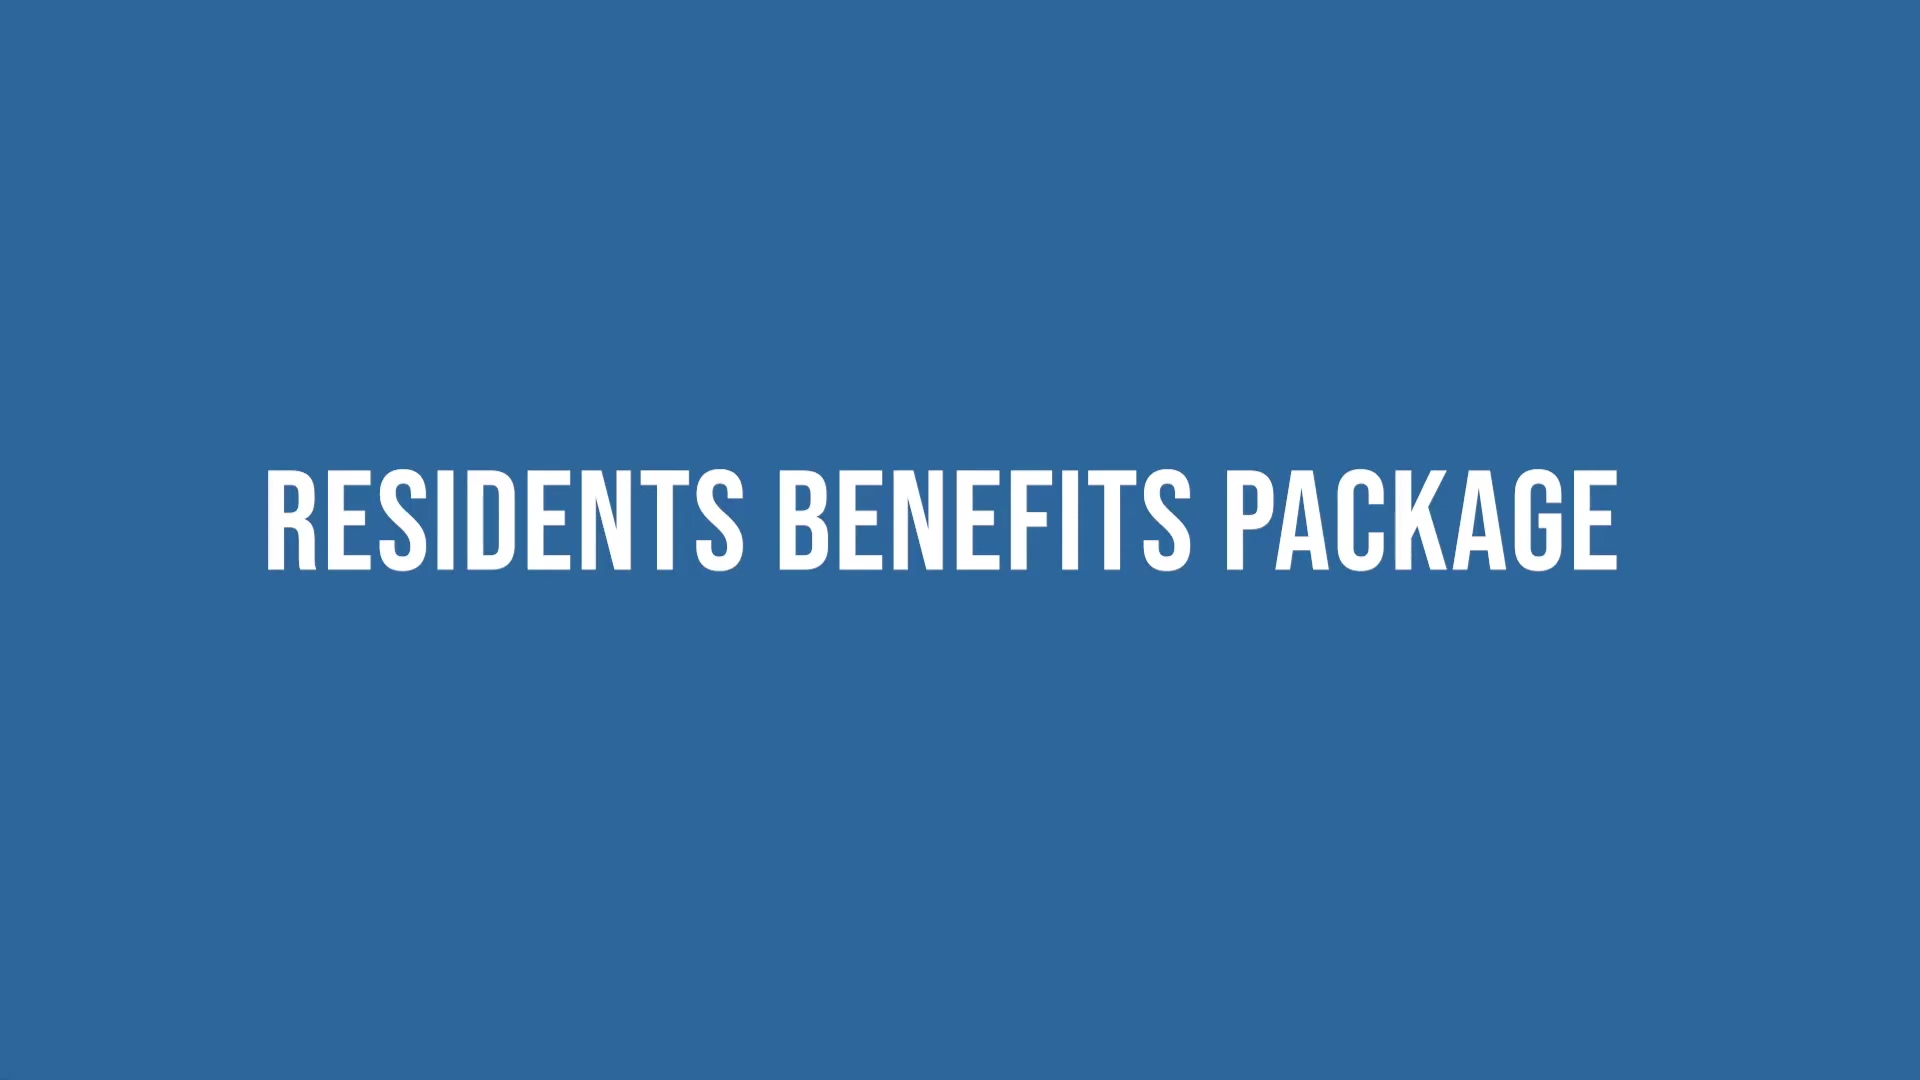 Residents Benefit Package